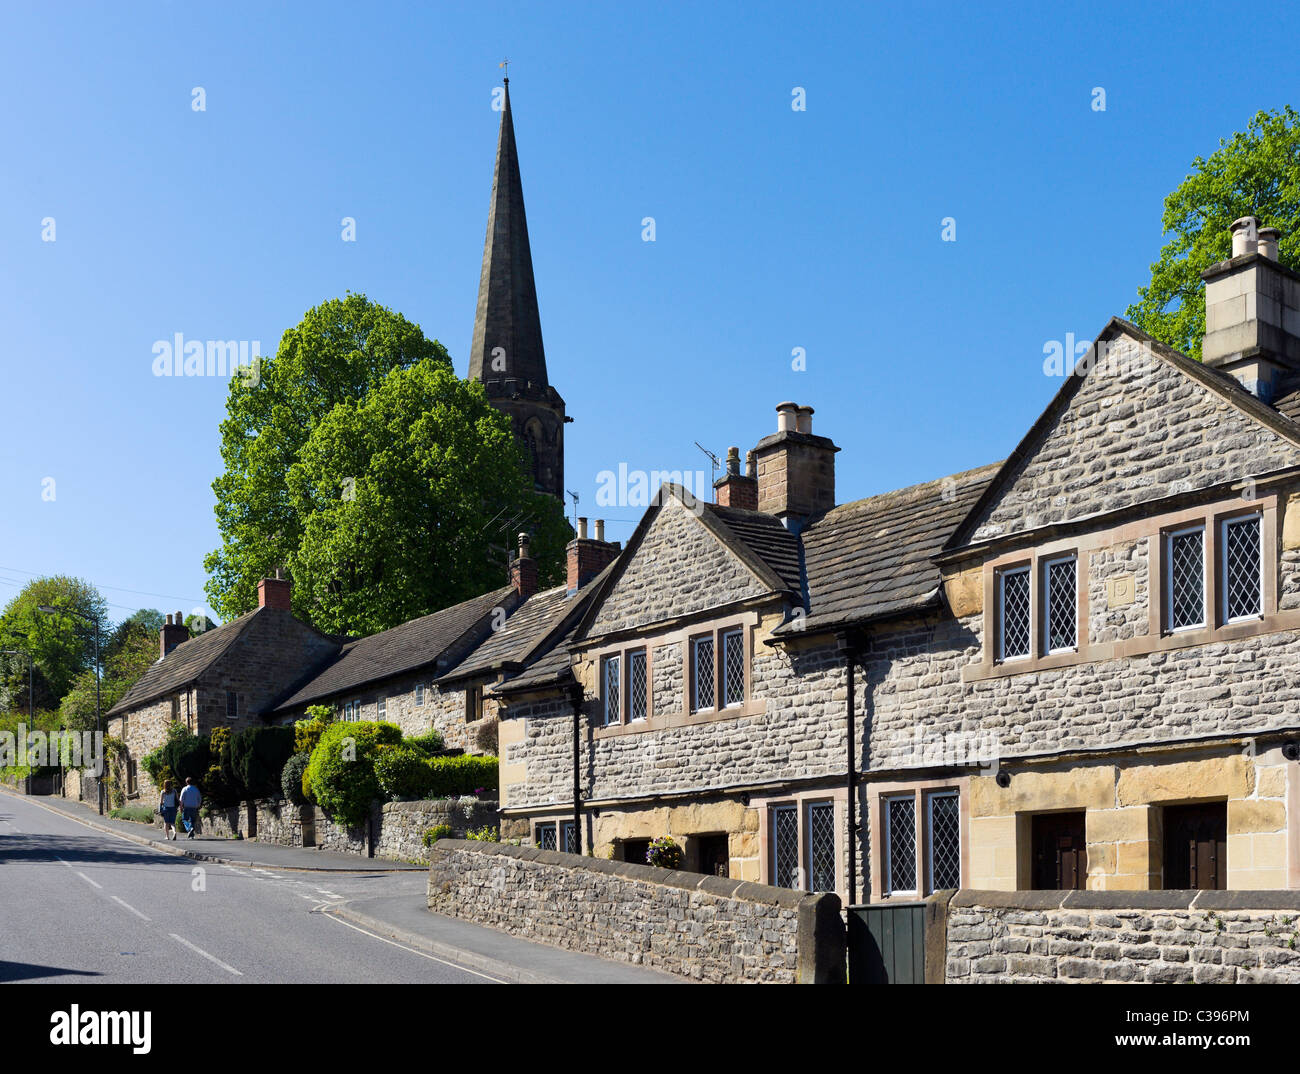 The steeple of All Saints Parish Church from South Church Street, Bakewell, The Peak District, Derbyshire, UK - Stock Image